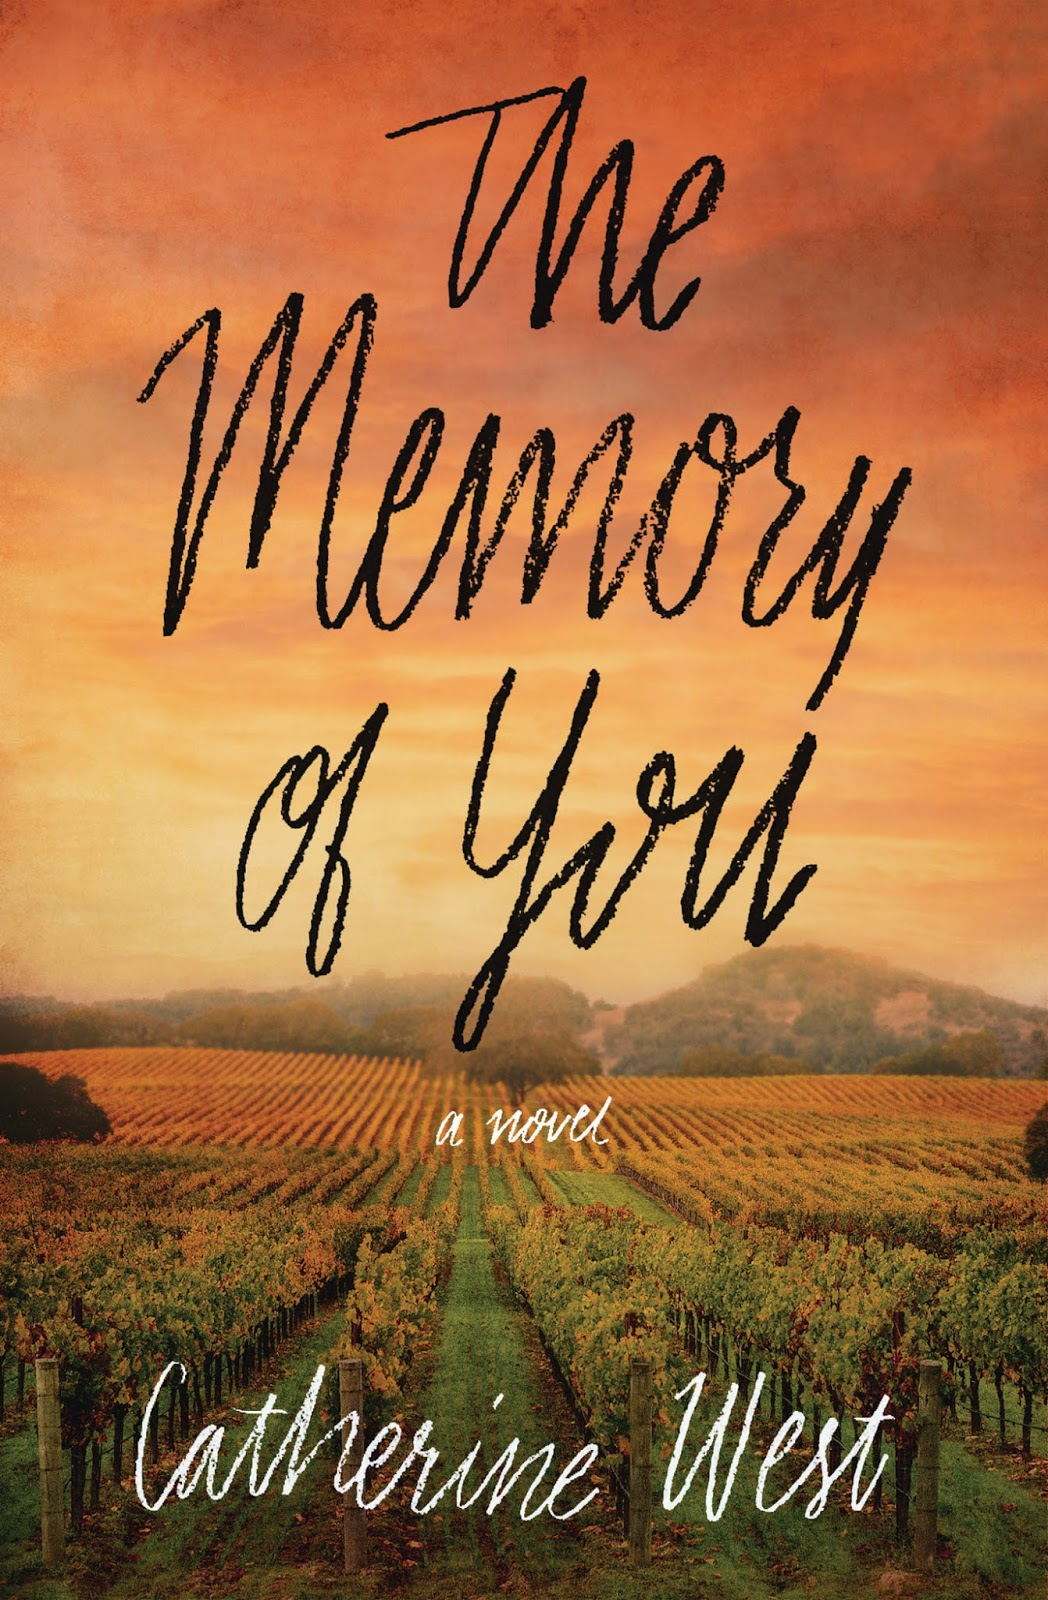 Catherine's Latest Novels Are The Things We Knew (july 2016) And The Memory  Of You (march 2017), Harper Collins Christian Publishing